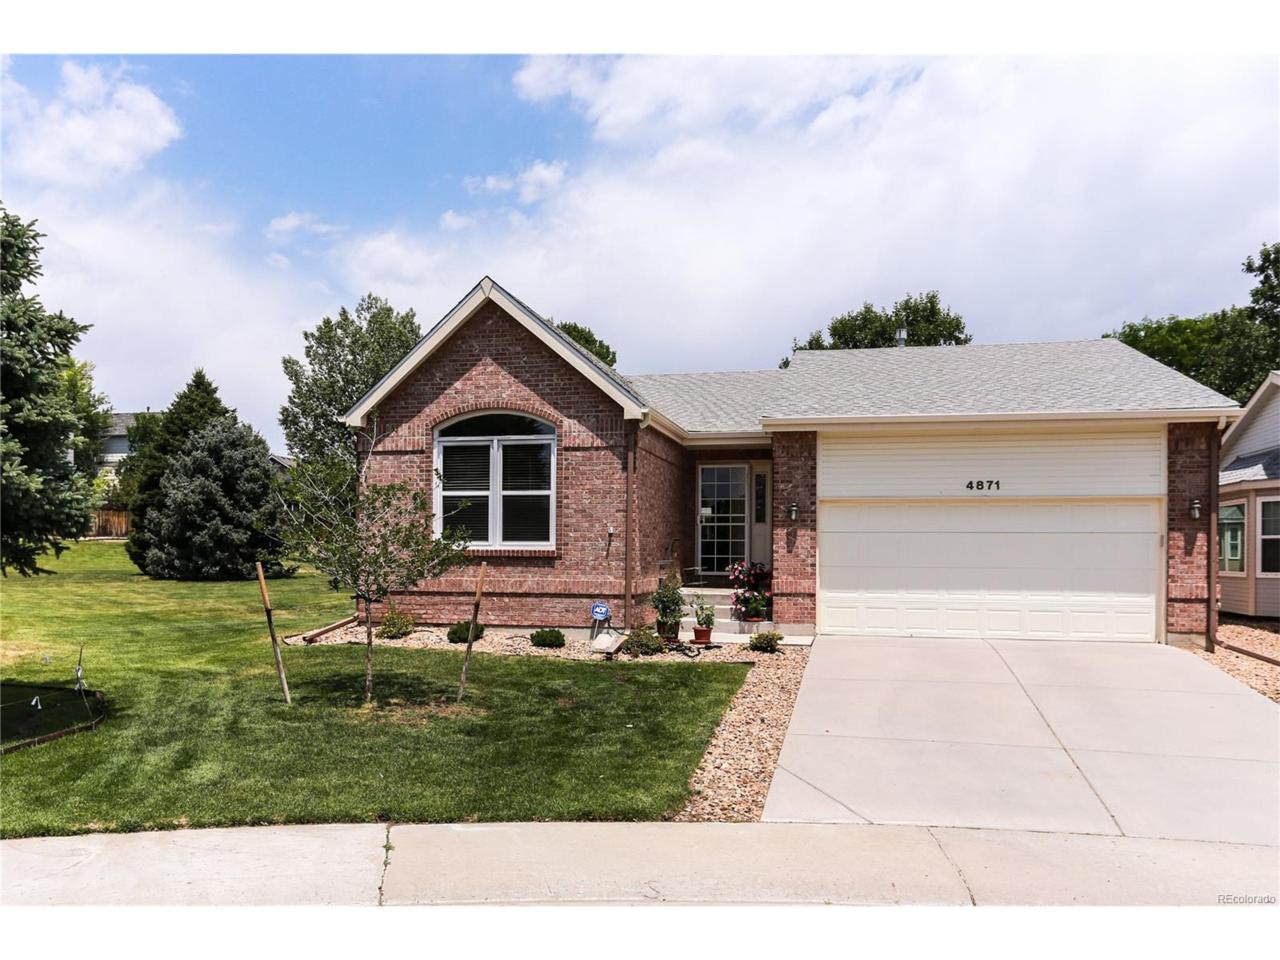 4871 Greenwich Drive, Highlands Ranch, CO 80130 (MLS #2624469) :: 8z Real Estate